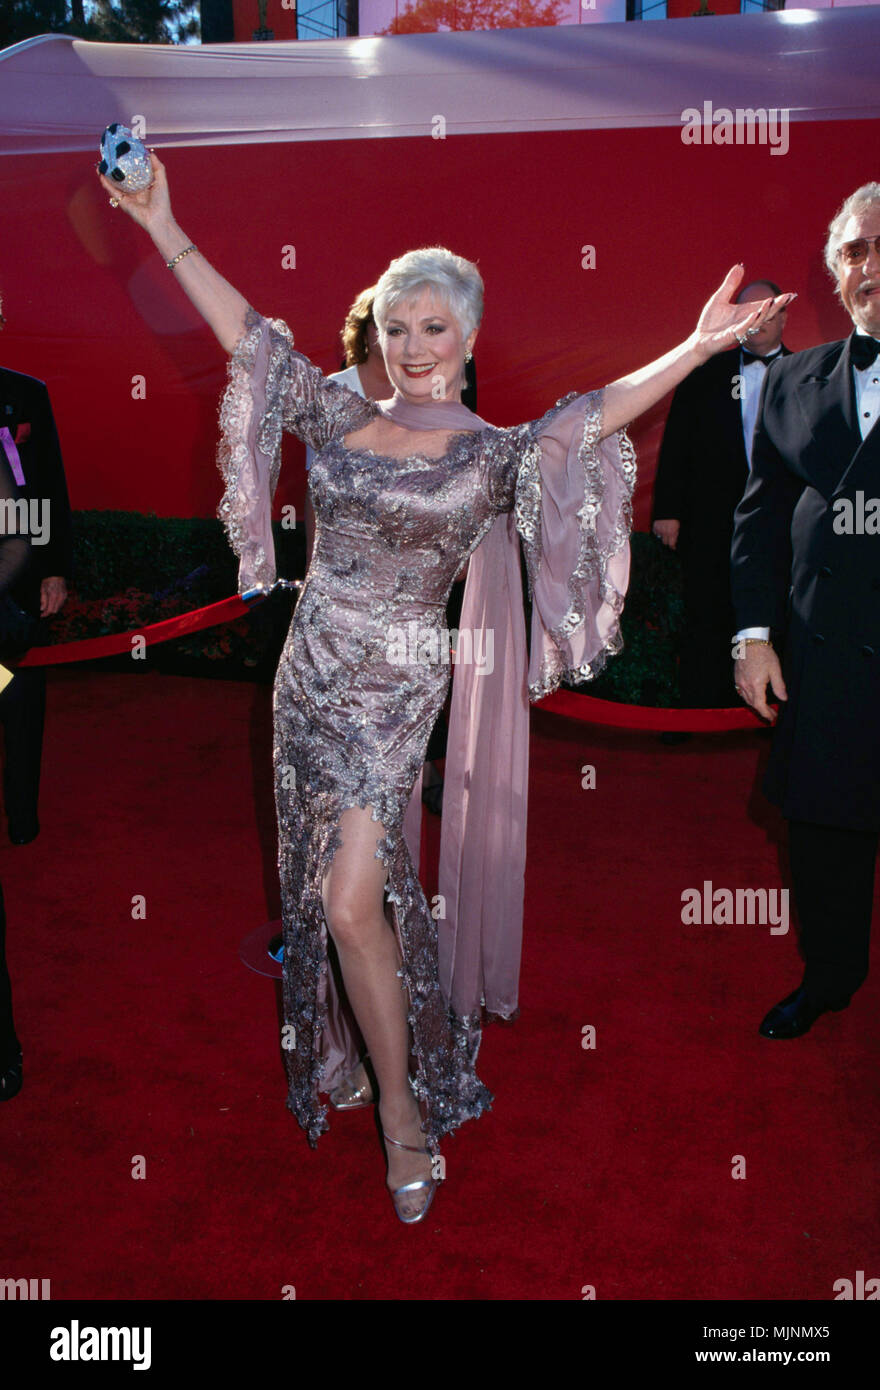 678337a6e81 1998 --- Shirley Jones shows off her gown at the 1998 Academy Awards  accompanied